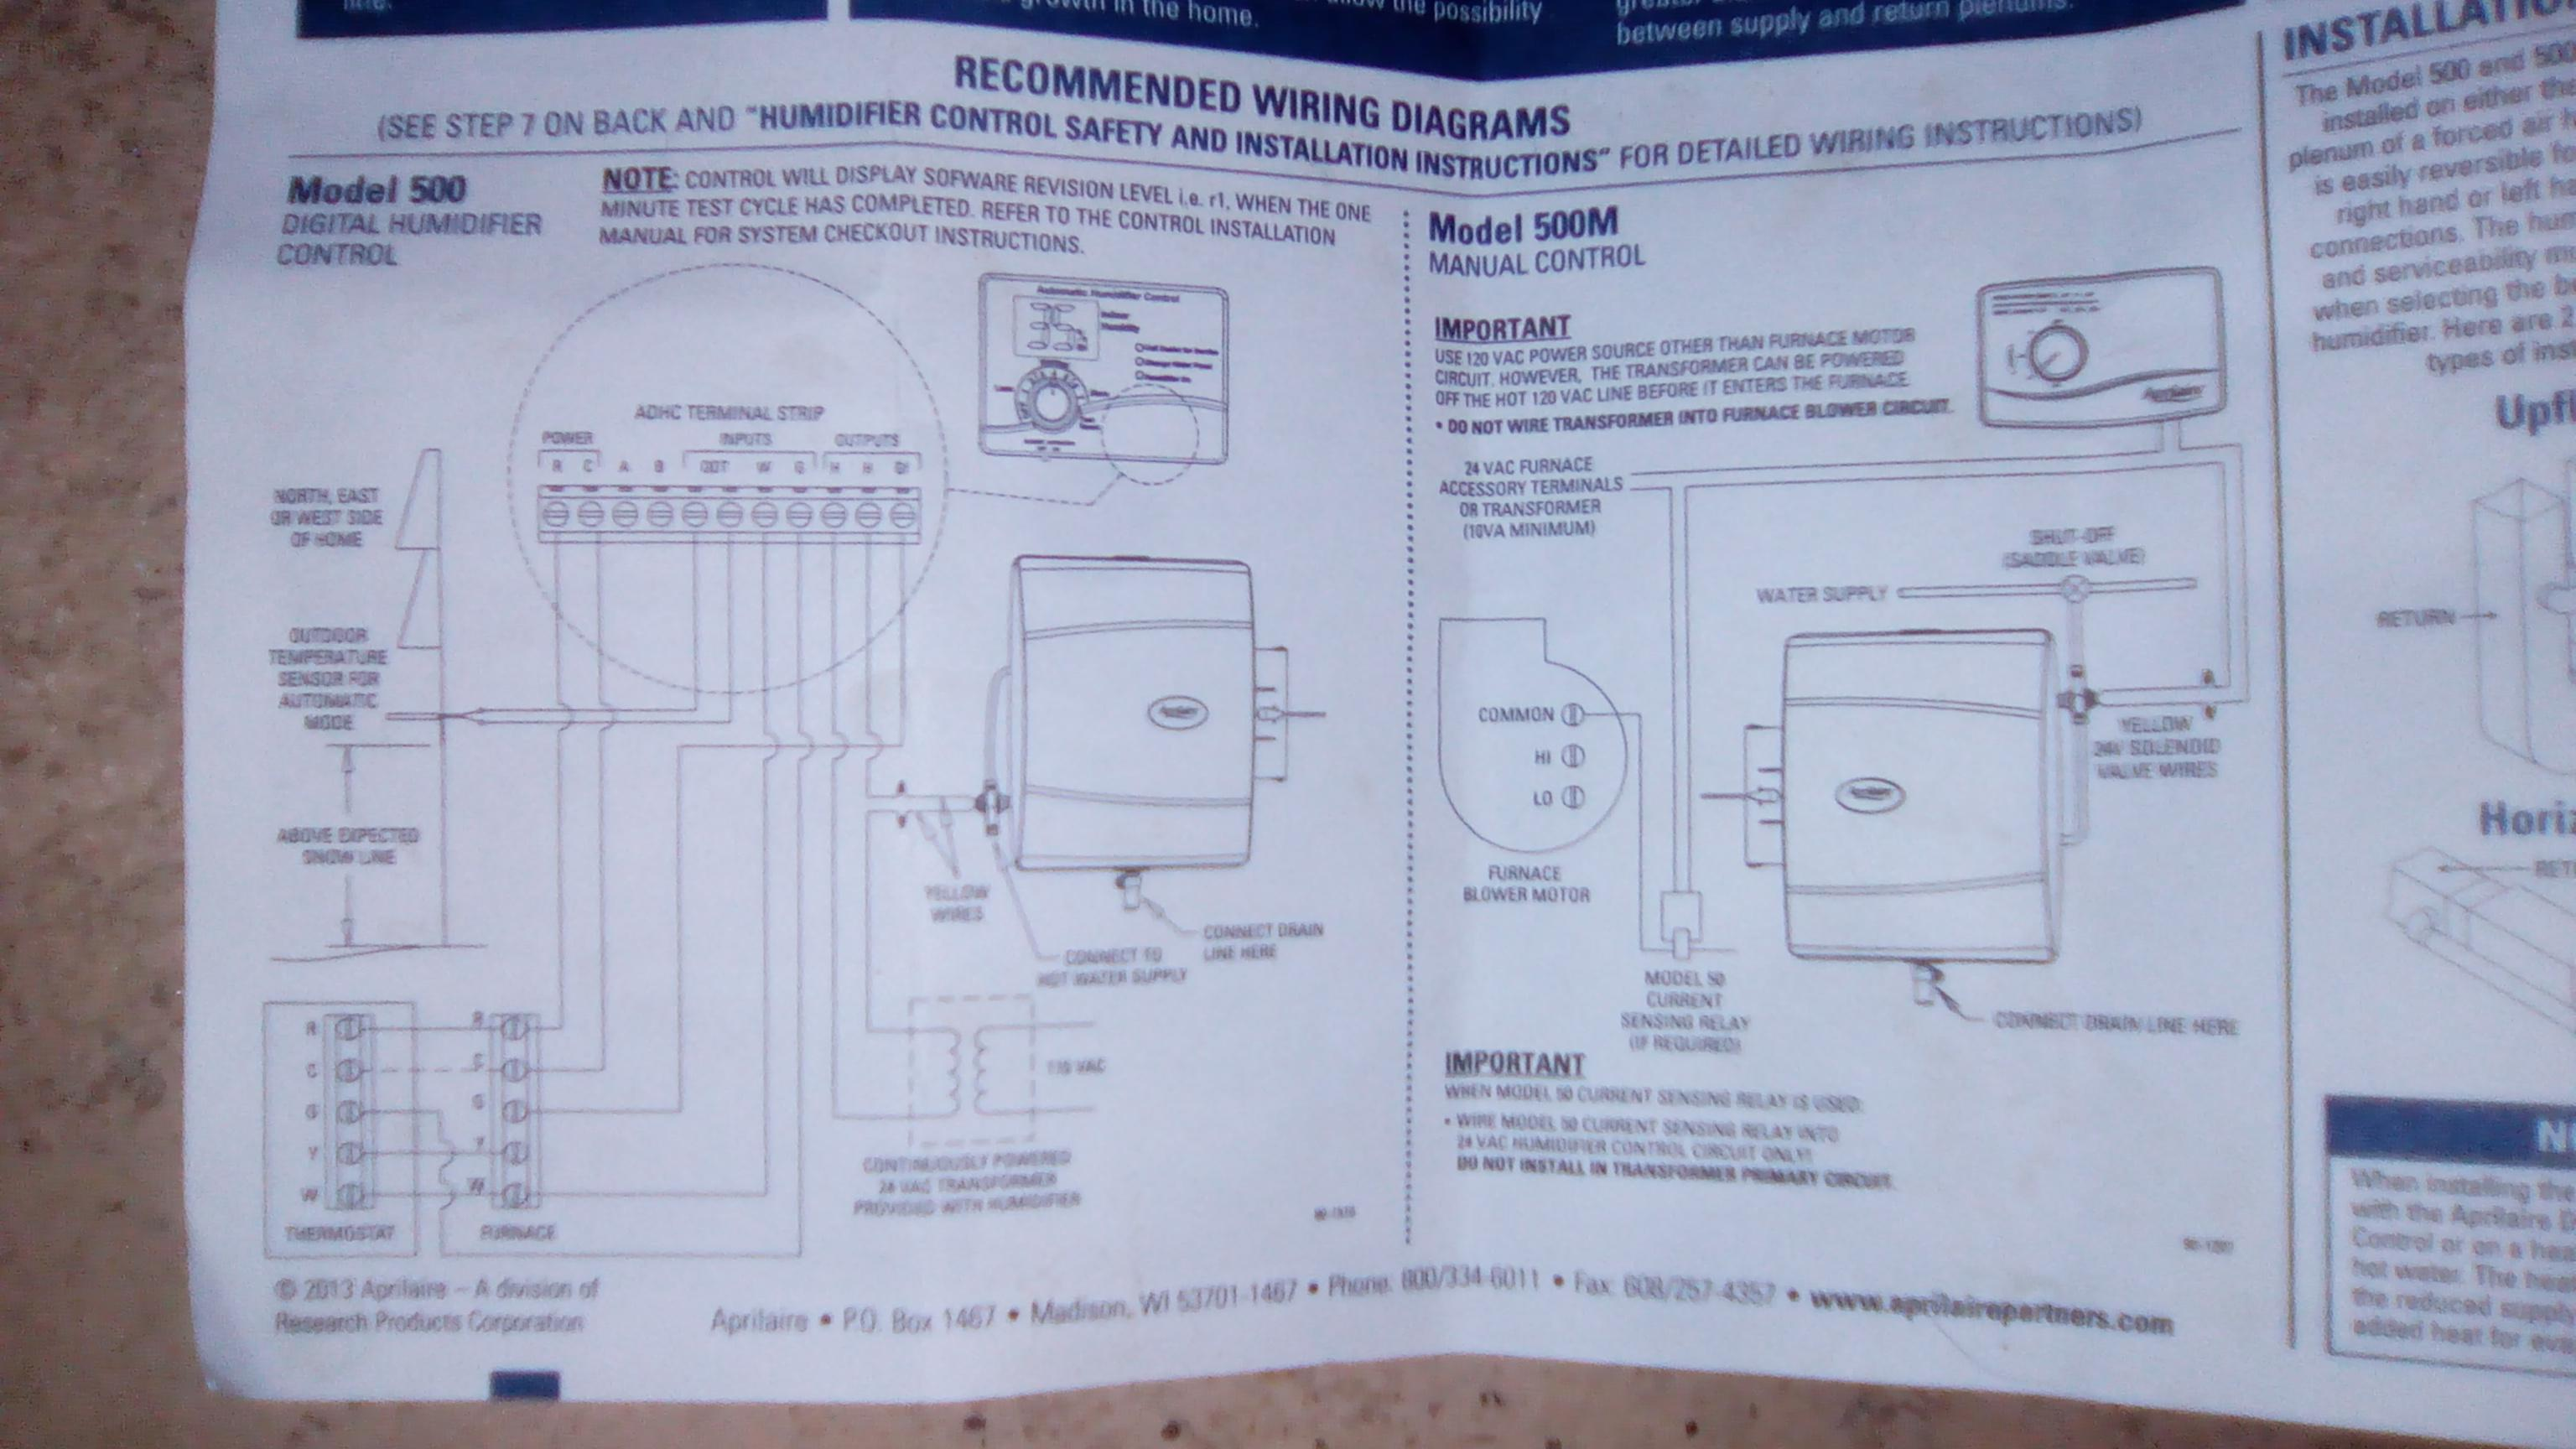 honeywell humidifier he365 wiring diagram 2000 sportster 1200 aprilaire 500 on an amana ams8 furnace